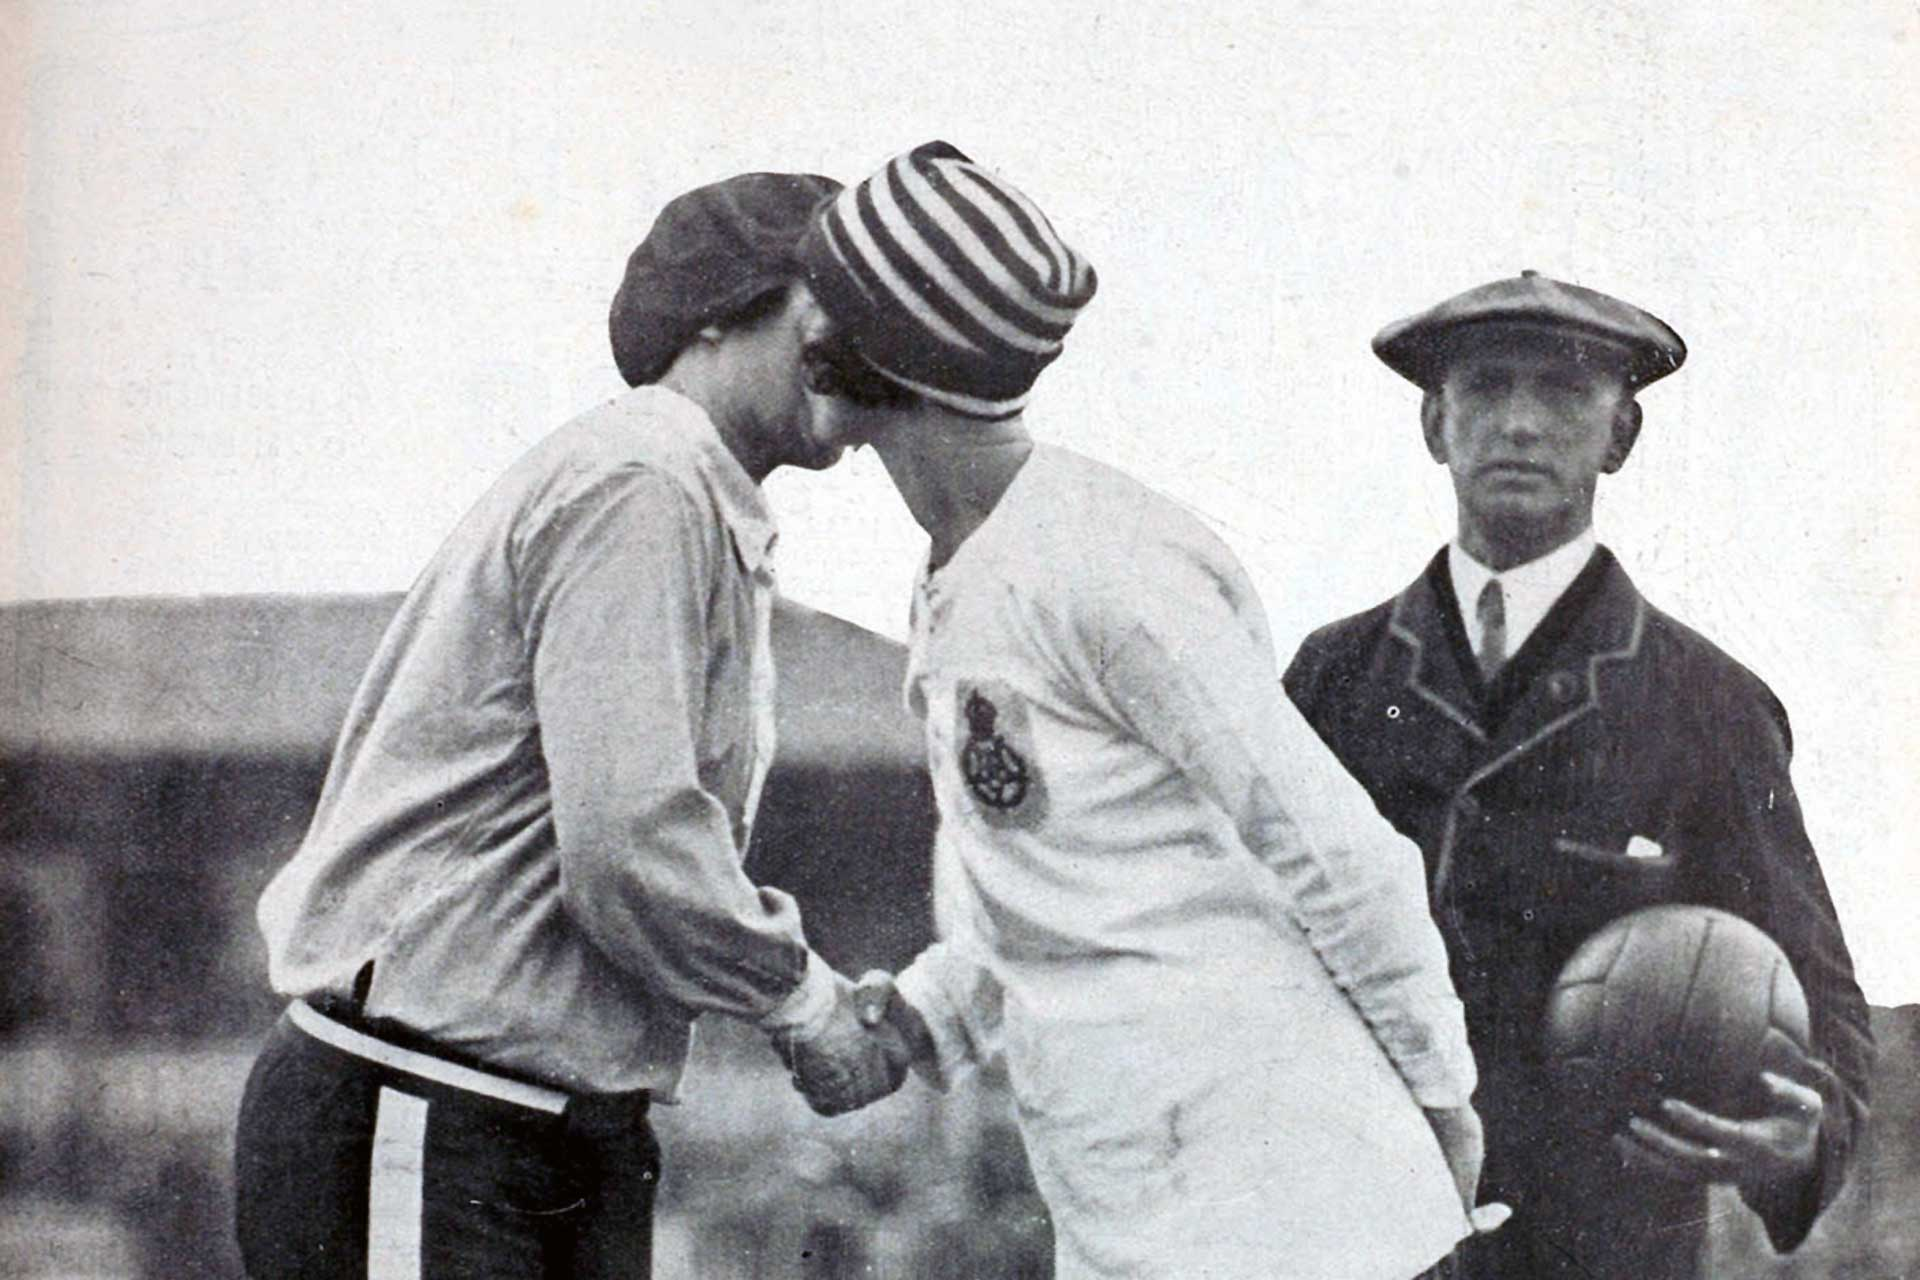 La Mujer el Football (Women and Football). Florrie Redford of Dick, Kerr's Ladies greets Carmen Pomies, captain of France, 1925 (Photo: Wikimedia Commons)